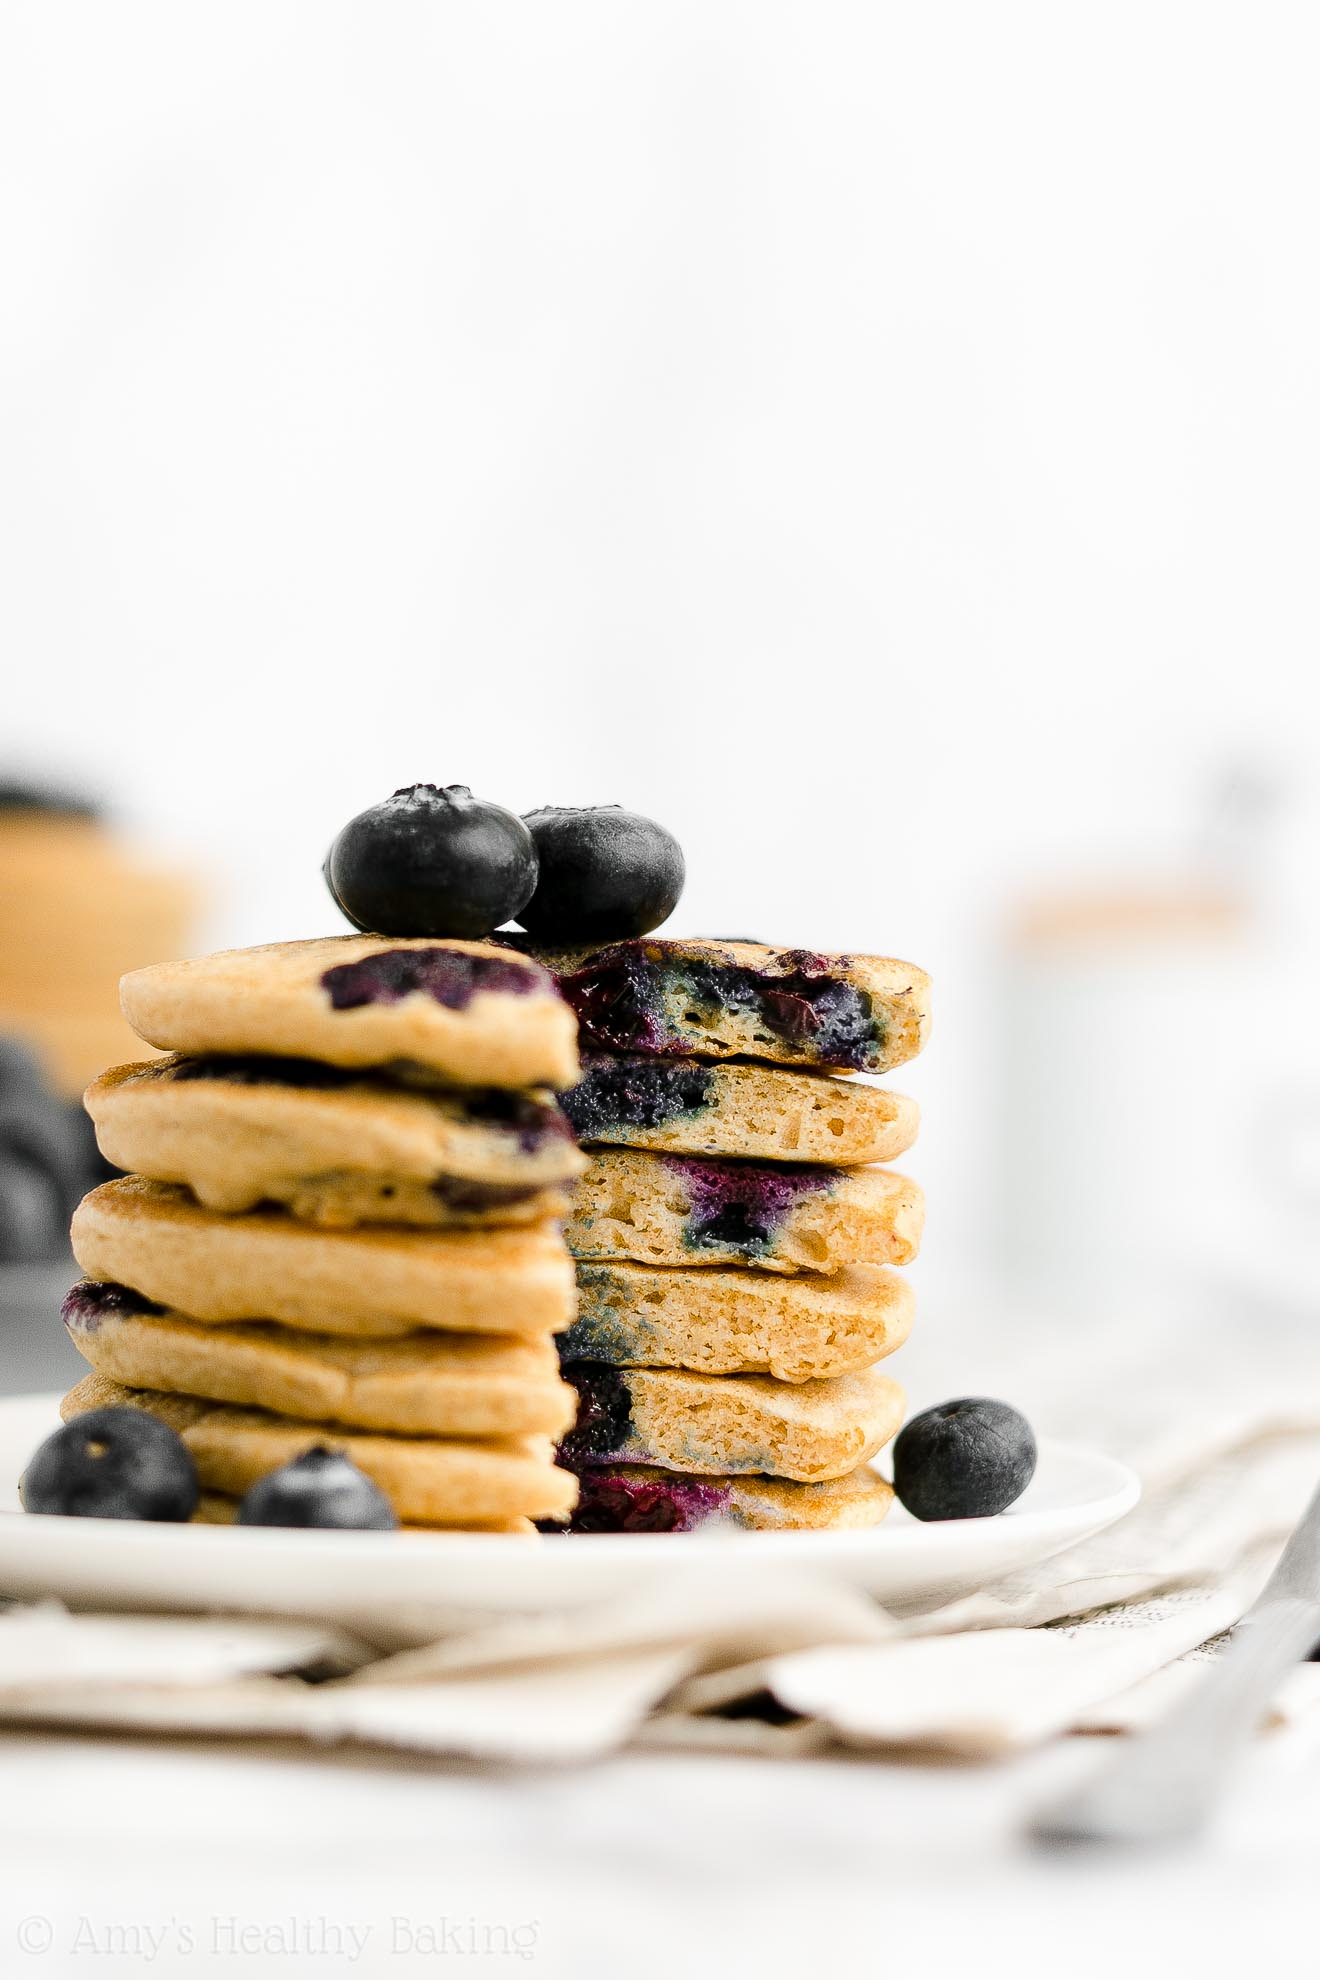 Best Easy Healthy Low Fat Gluten Free Greek Yogurt One-Bowl Blueberry Pancakes